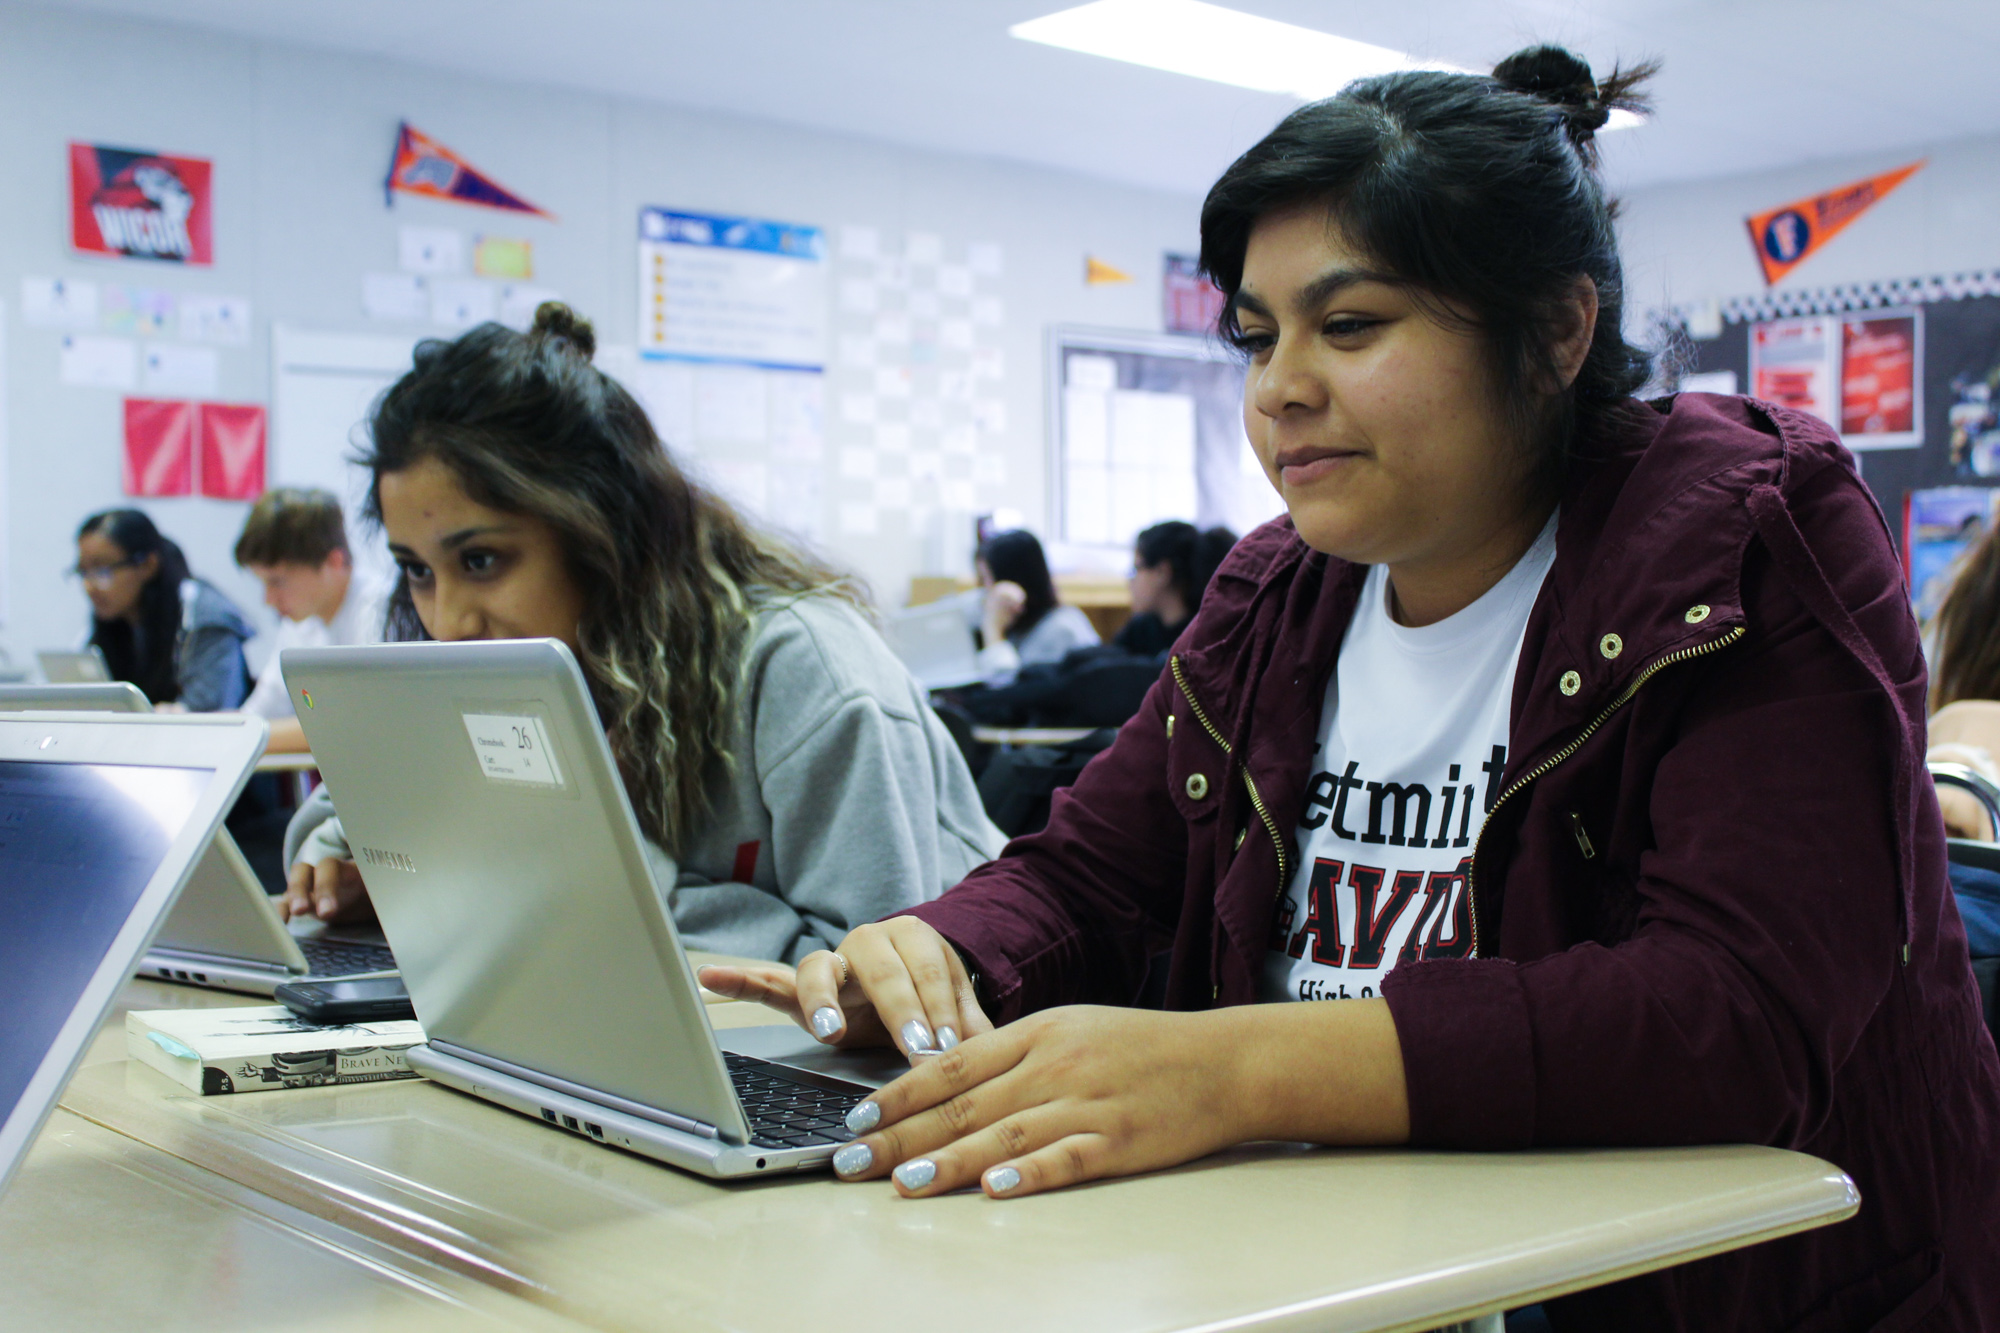 Westminster High School receives national recognition for successful AVID strategies